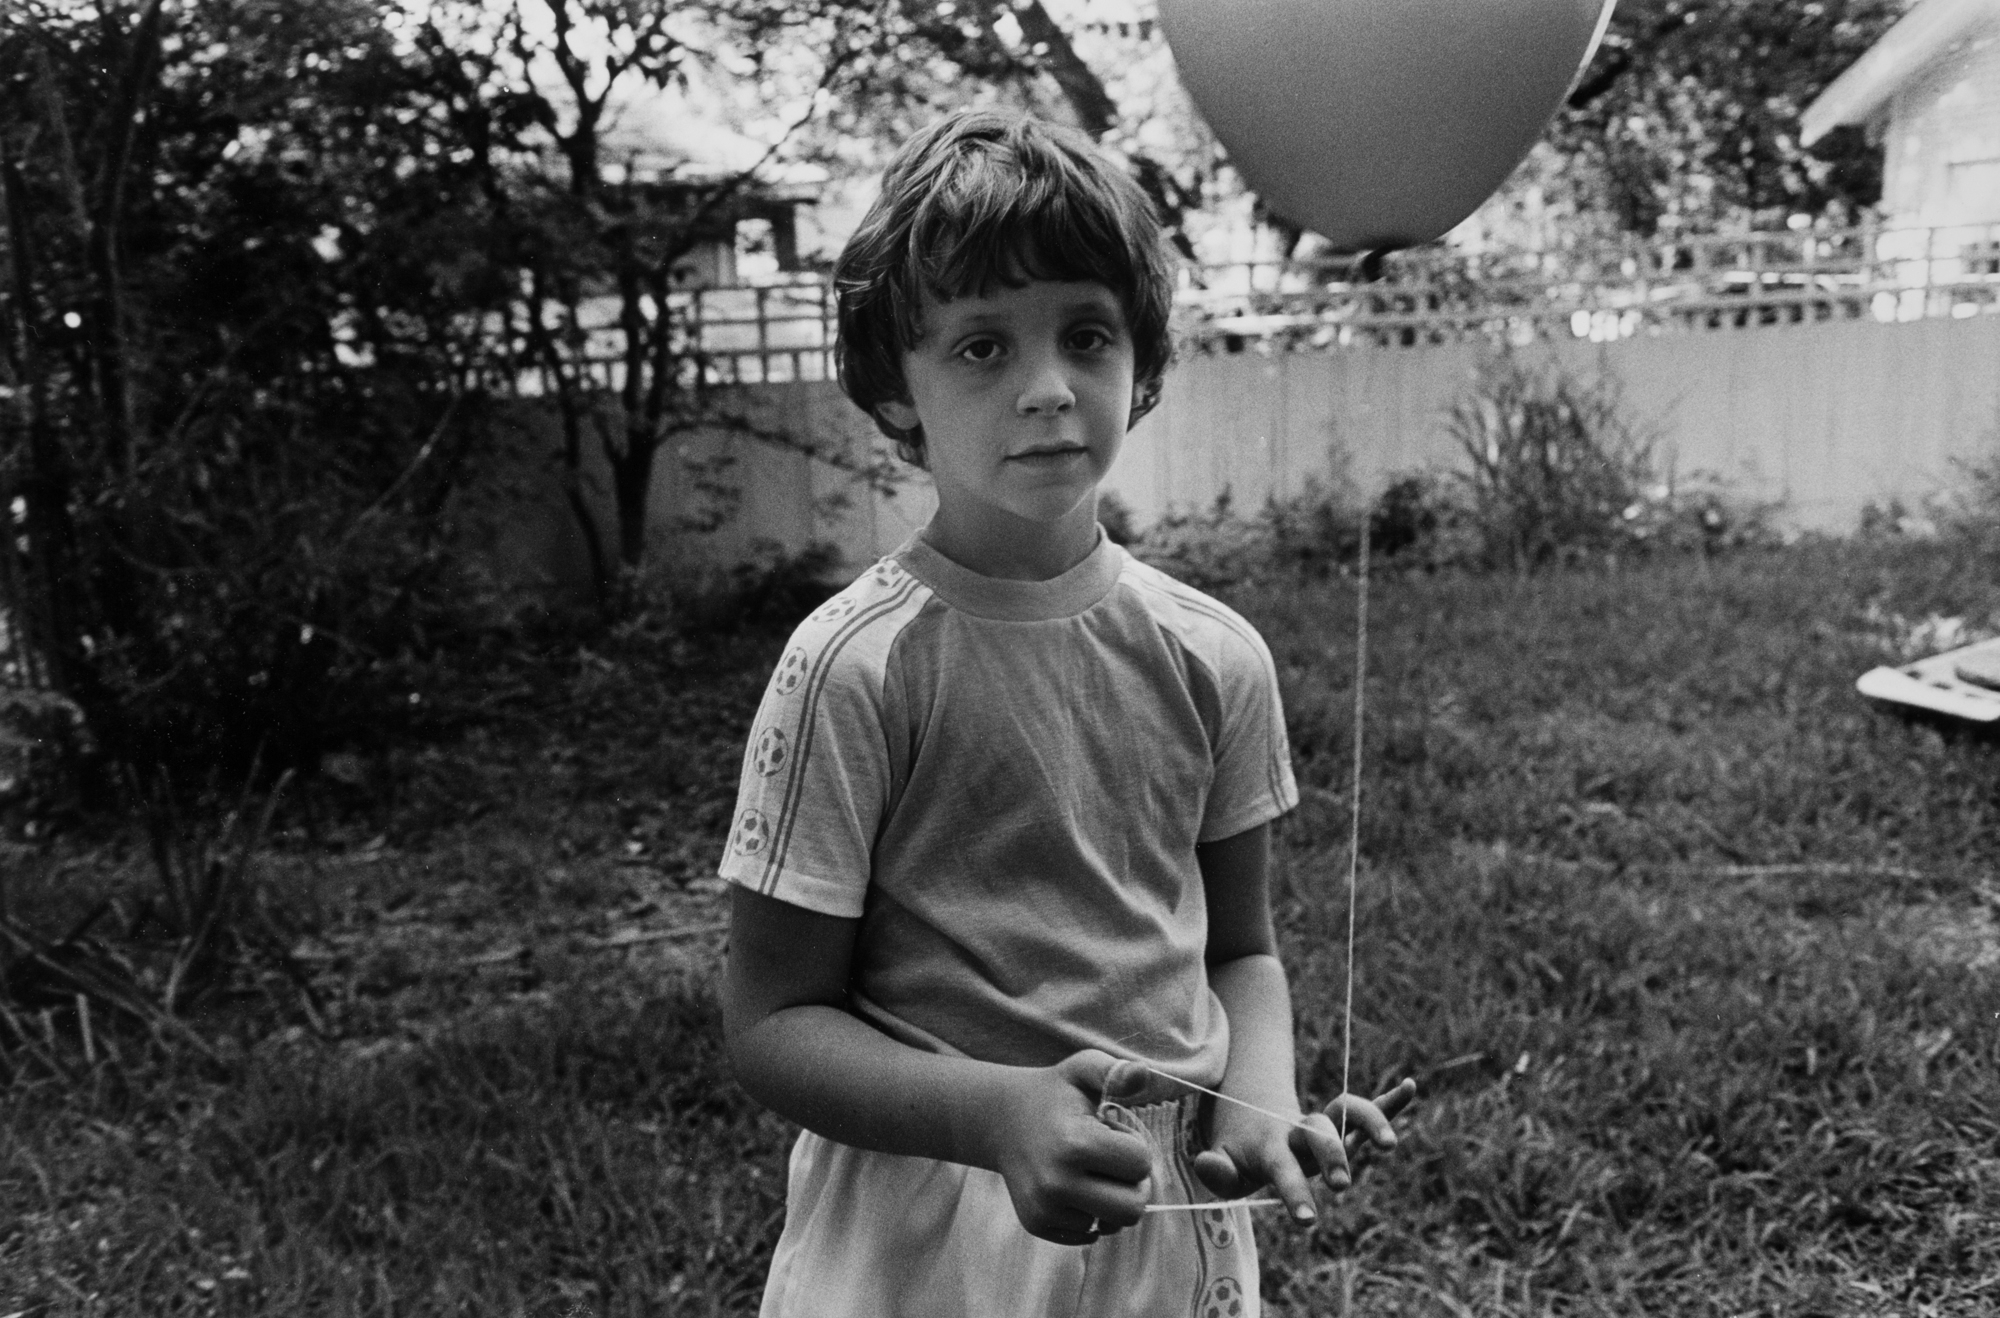 Jared and Balloon